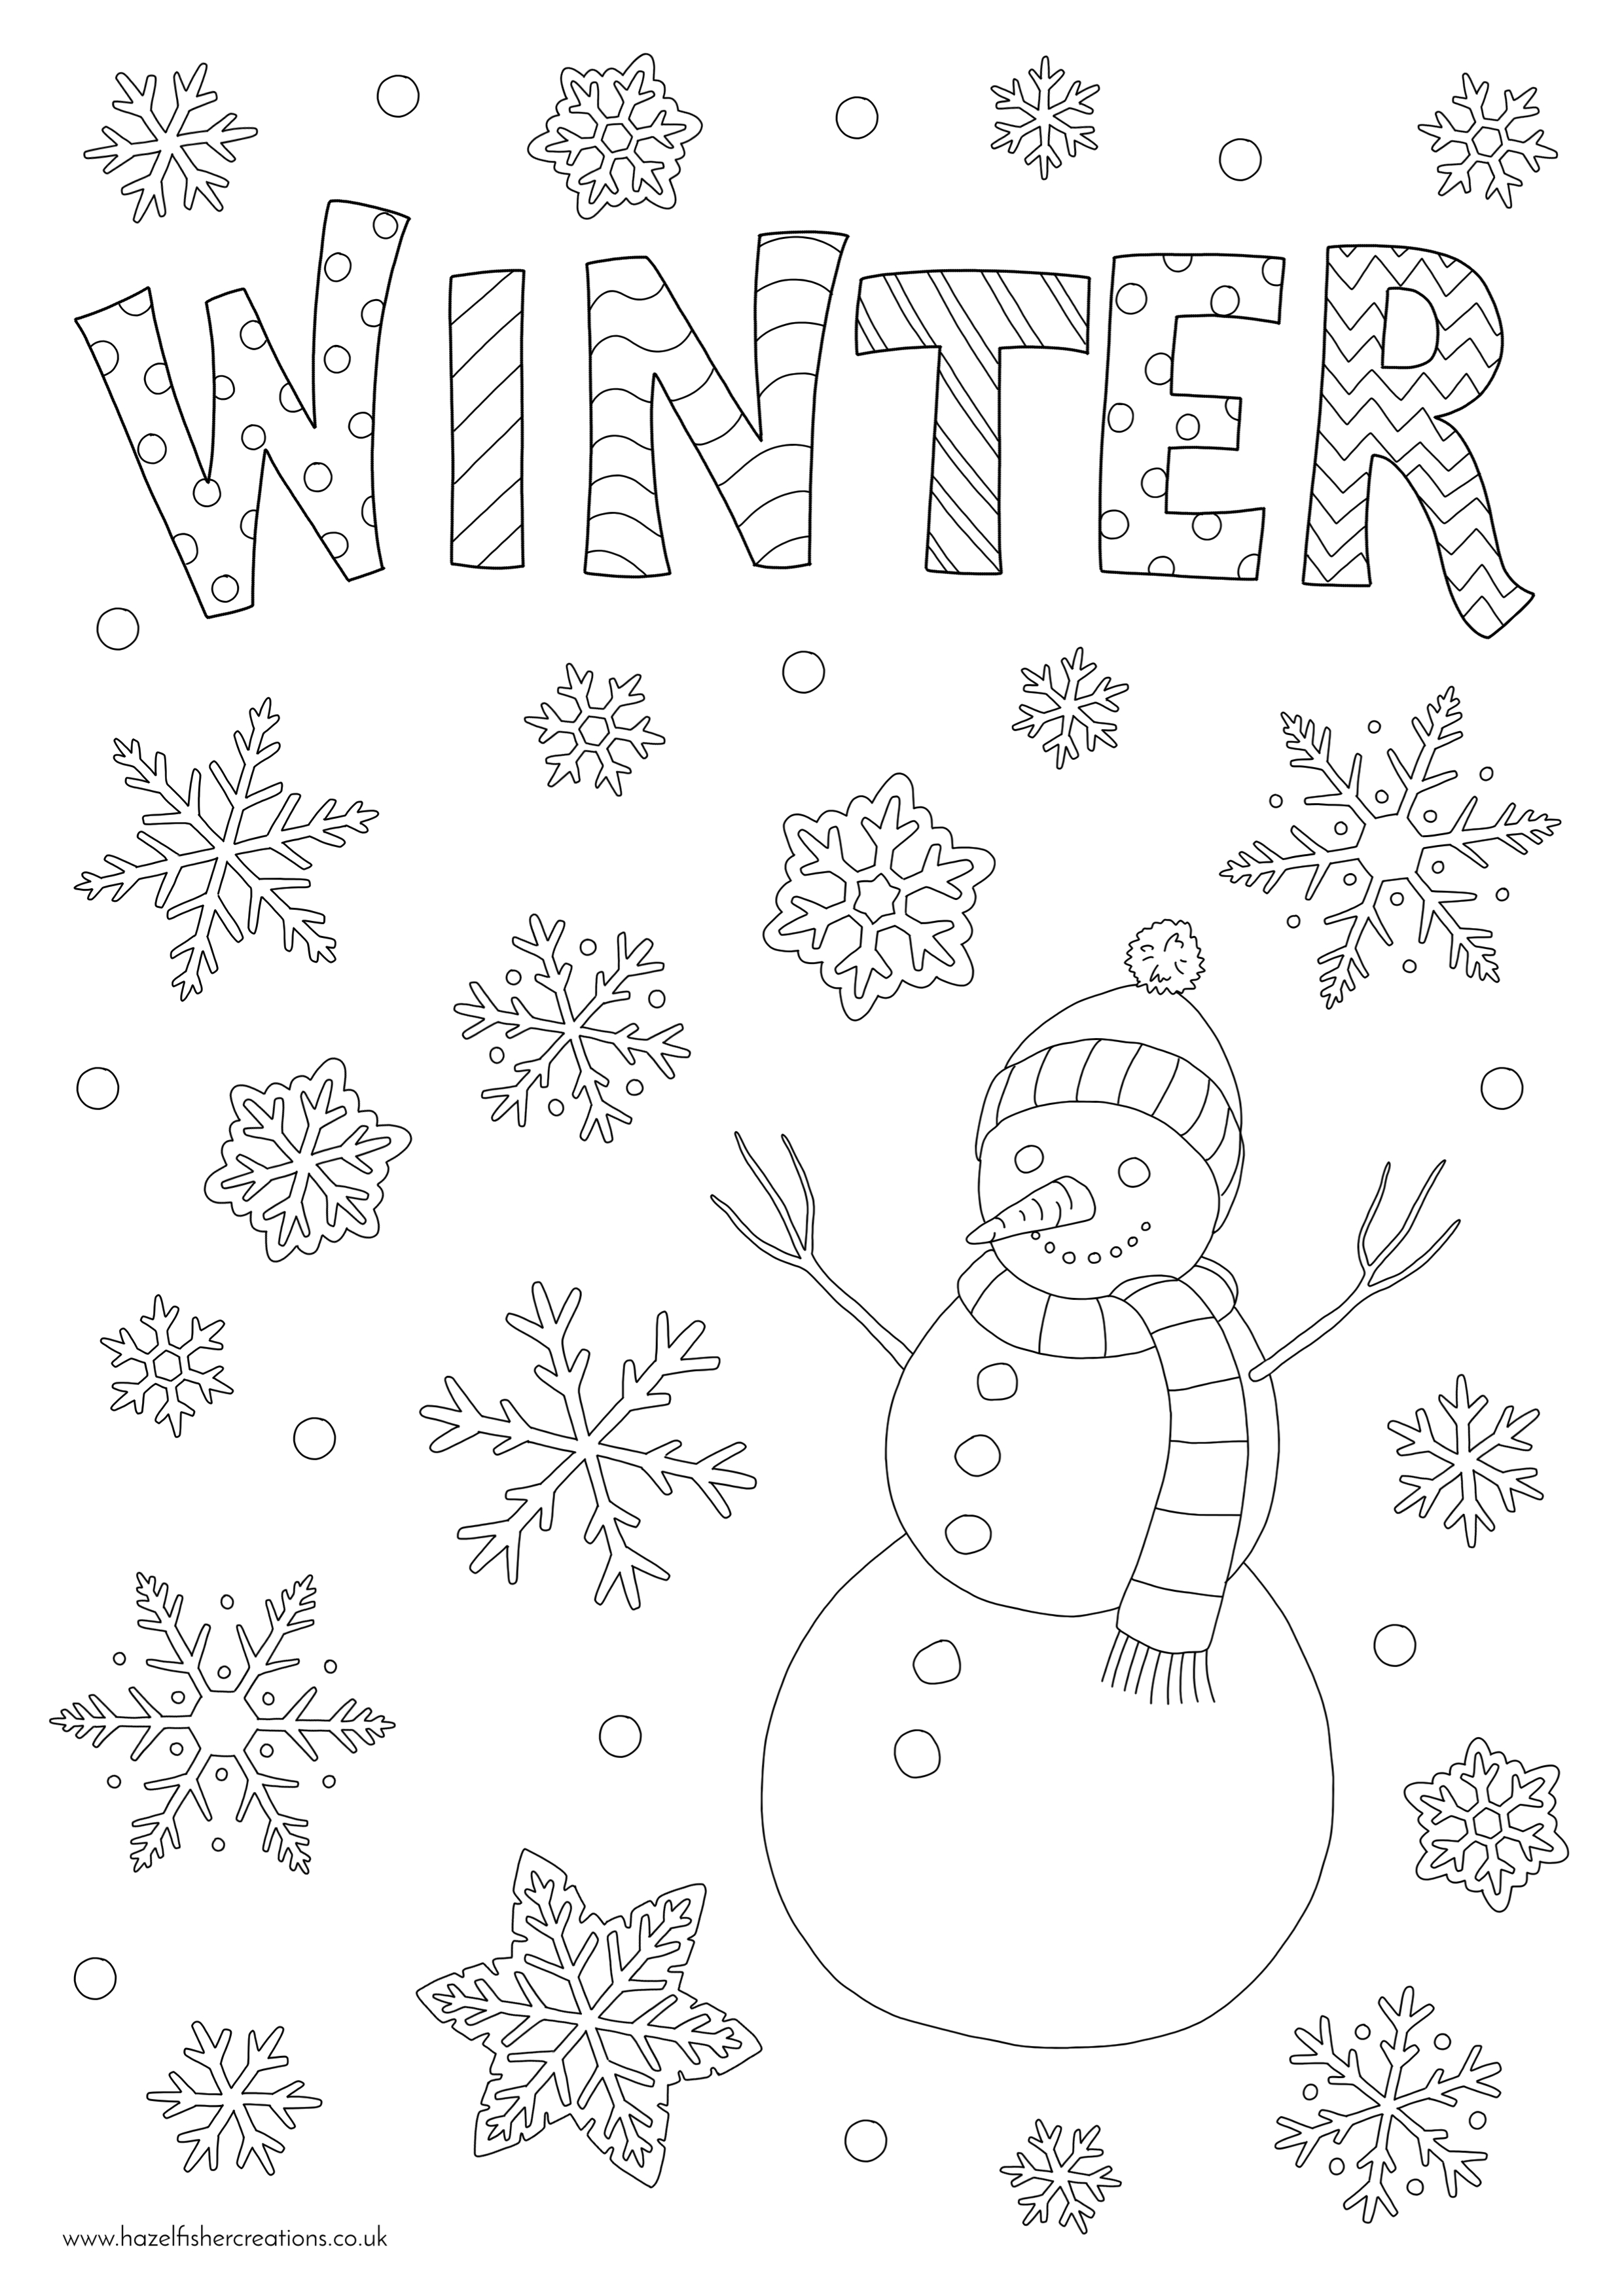 Winter Colouring In Activity Sheet  image